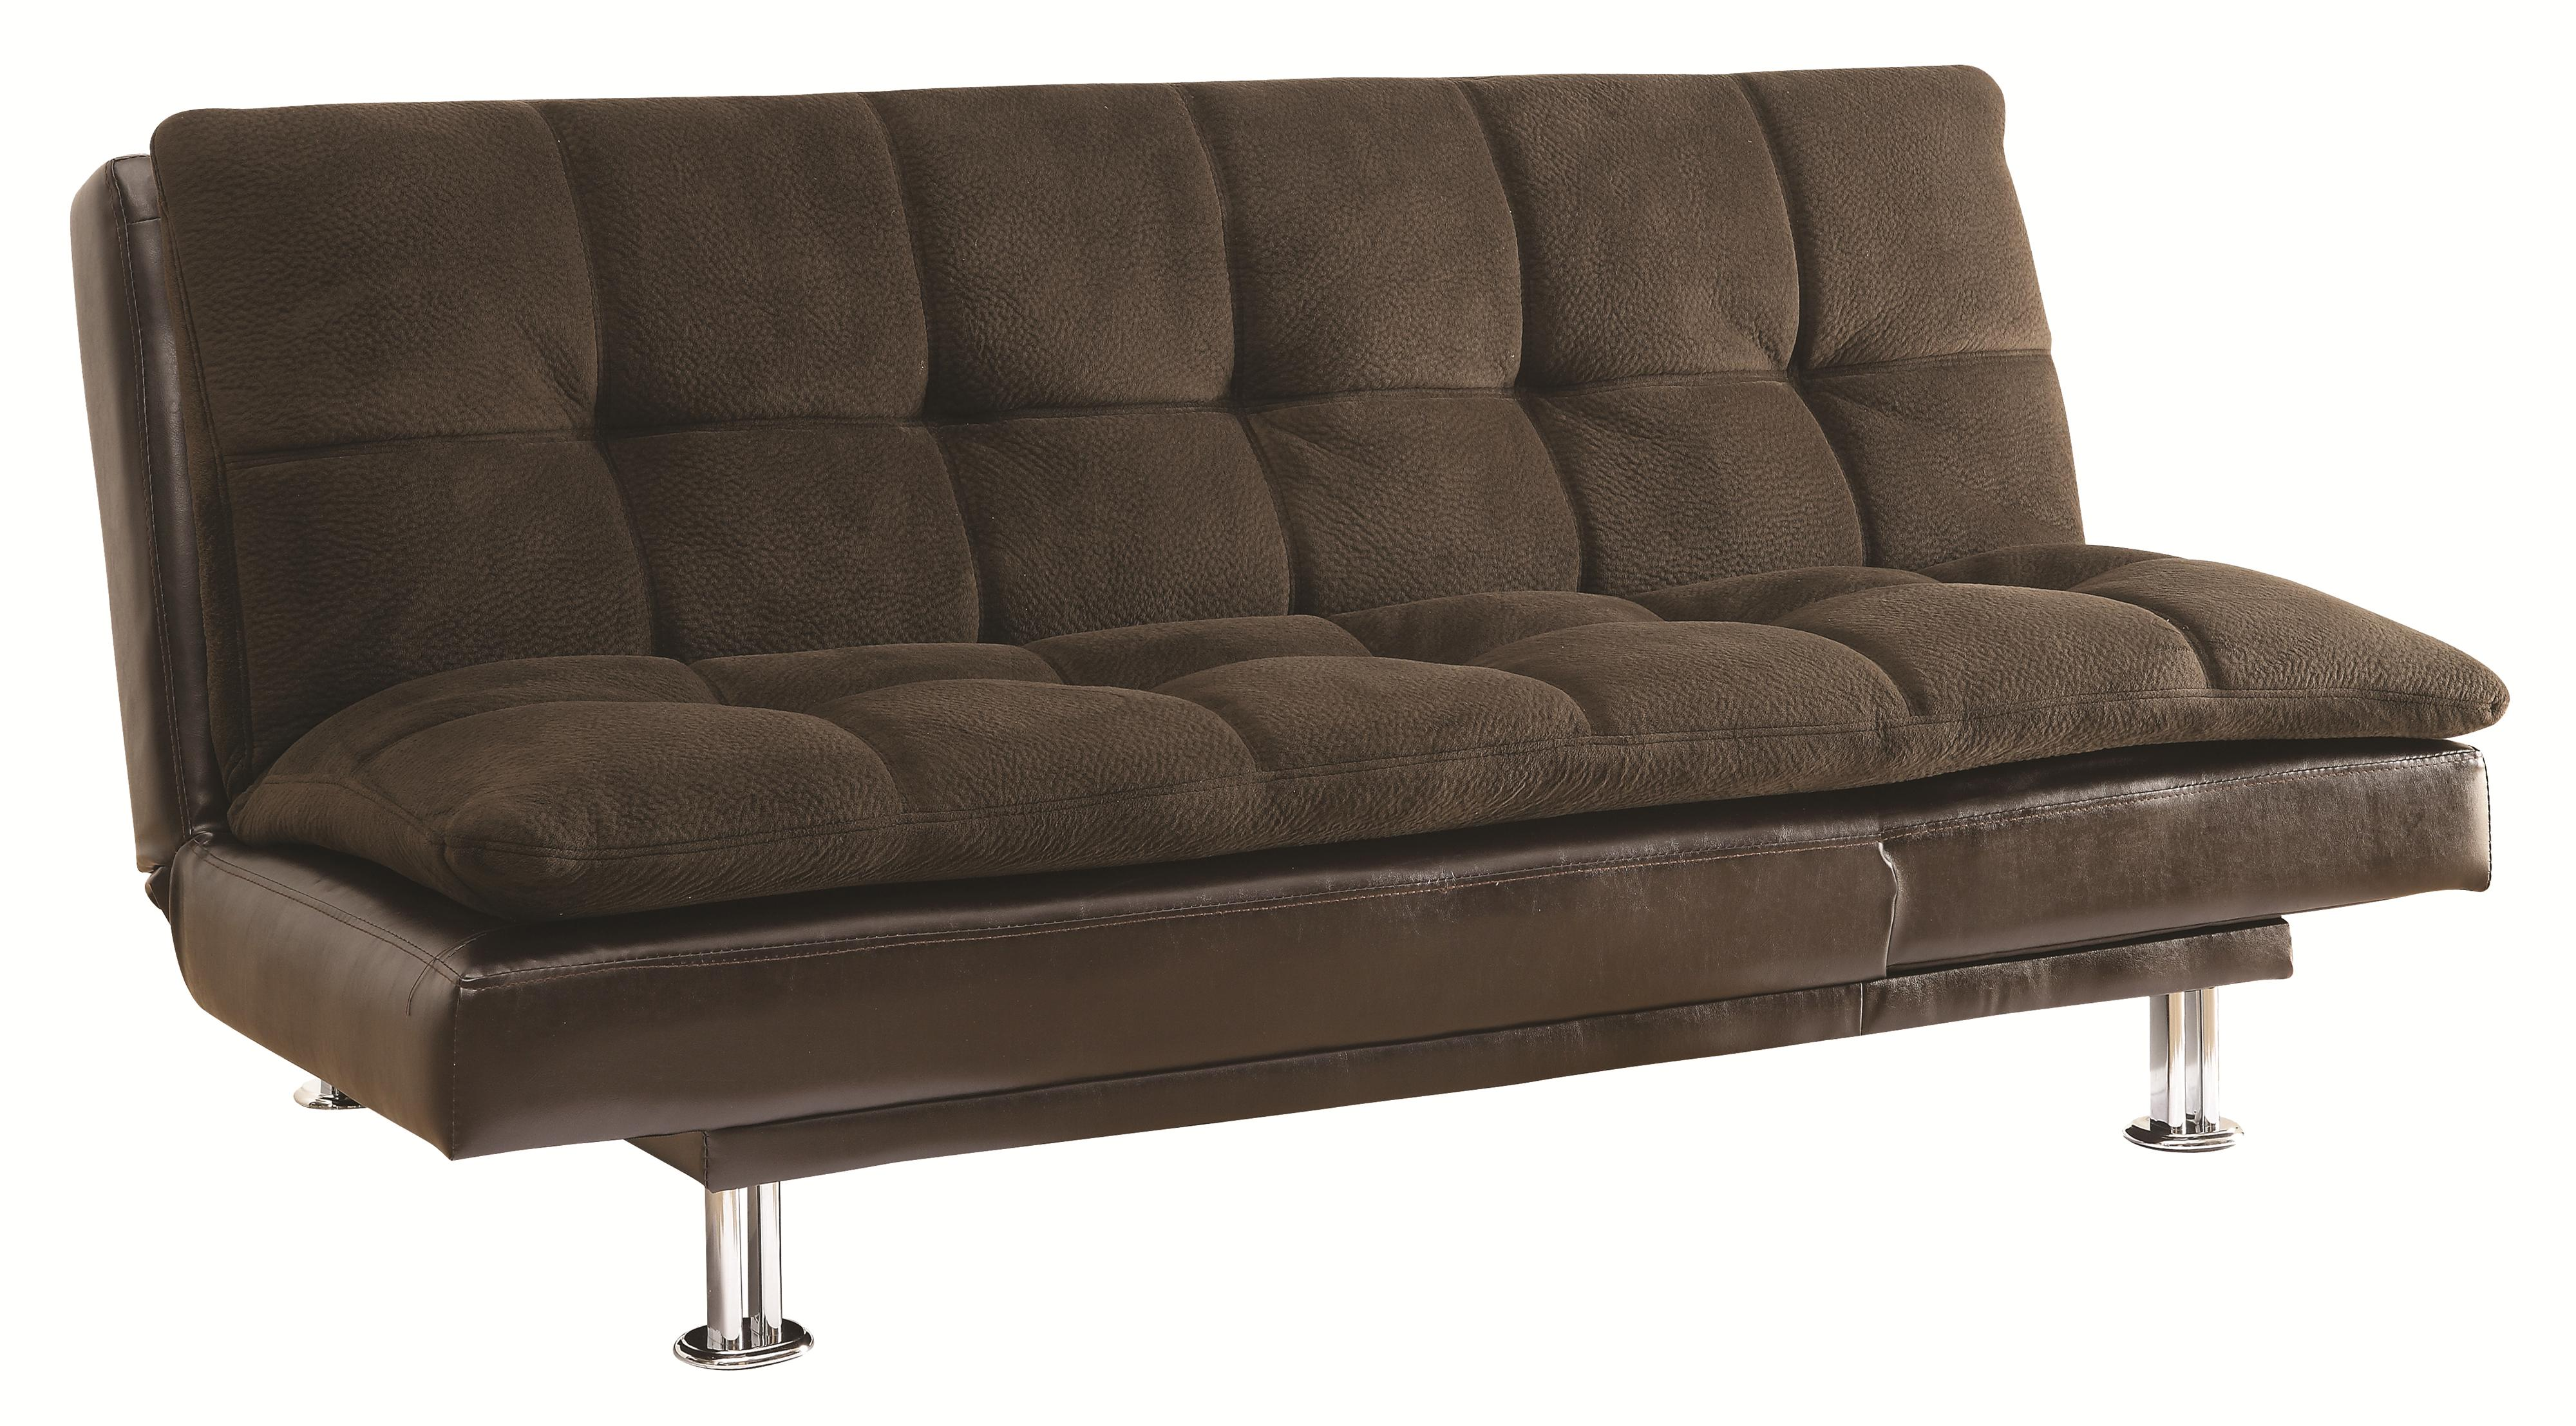 coasters sofa bed tosh furniture modern gray set coaster beds and futons millie with chrome